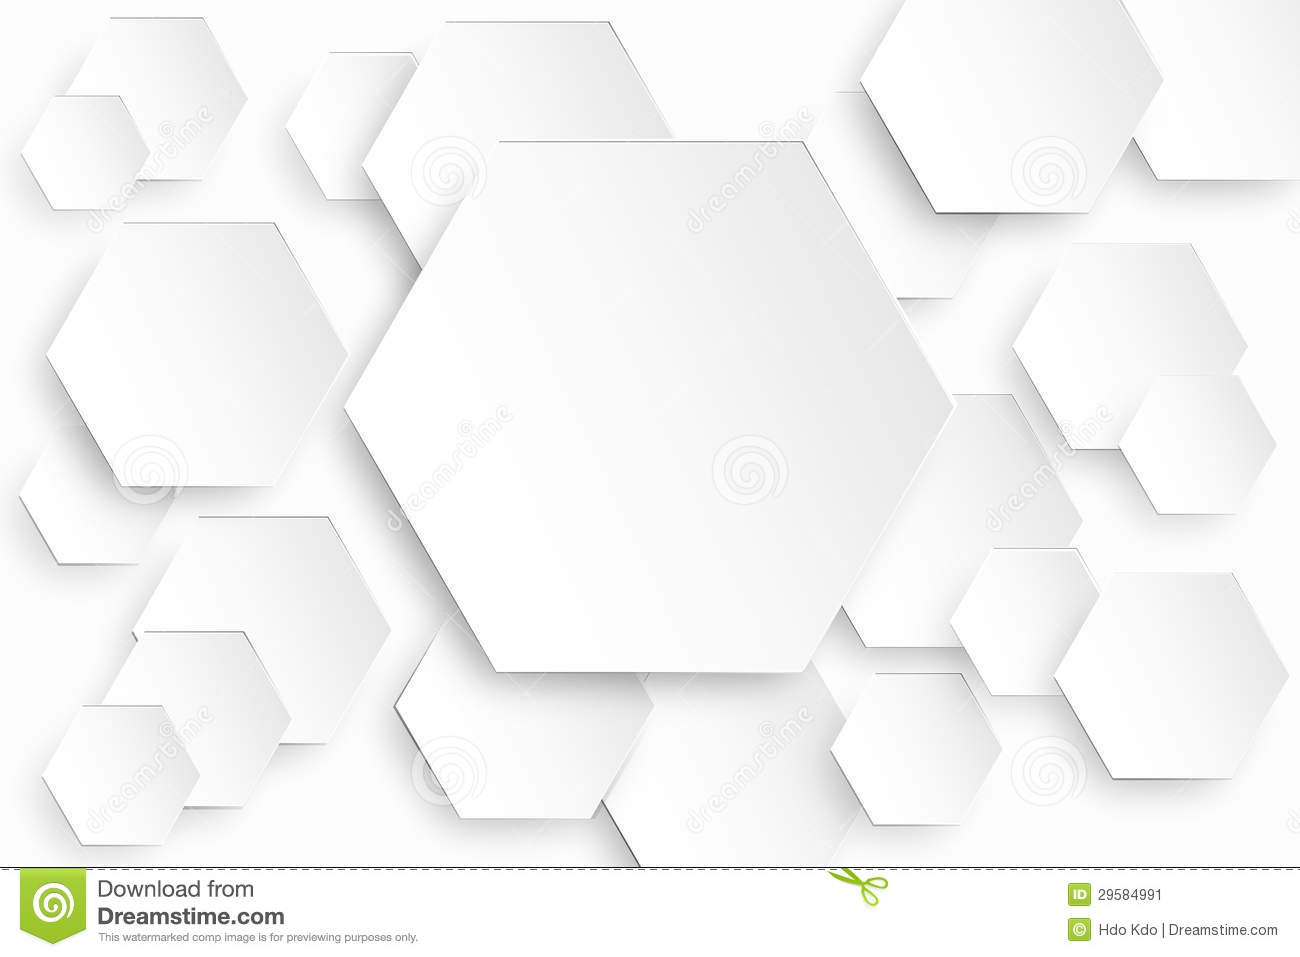 Hexagonal Background Stock Image - Image: 29584991